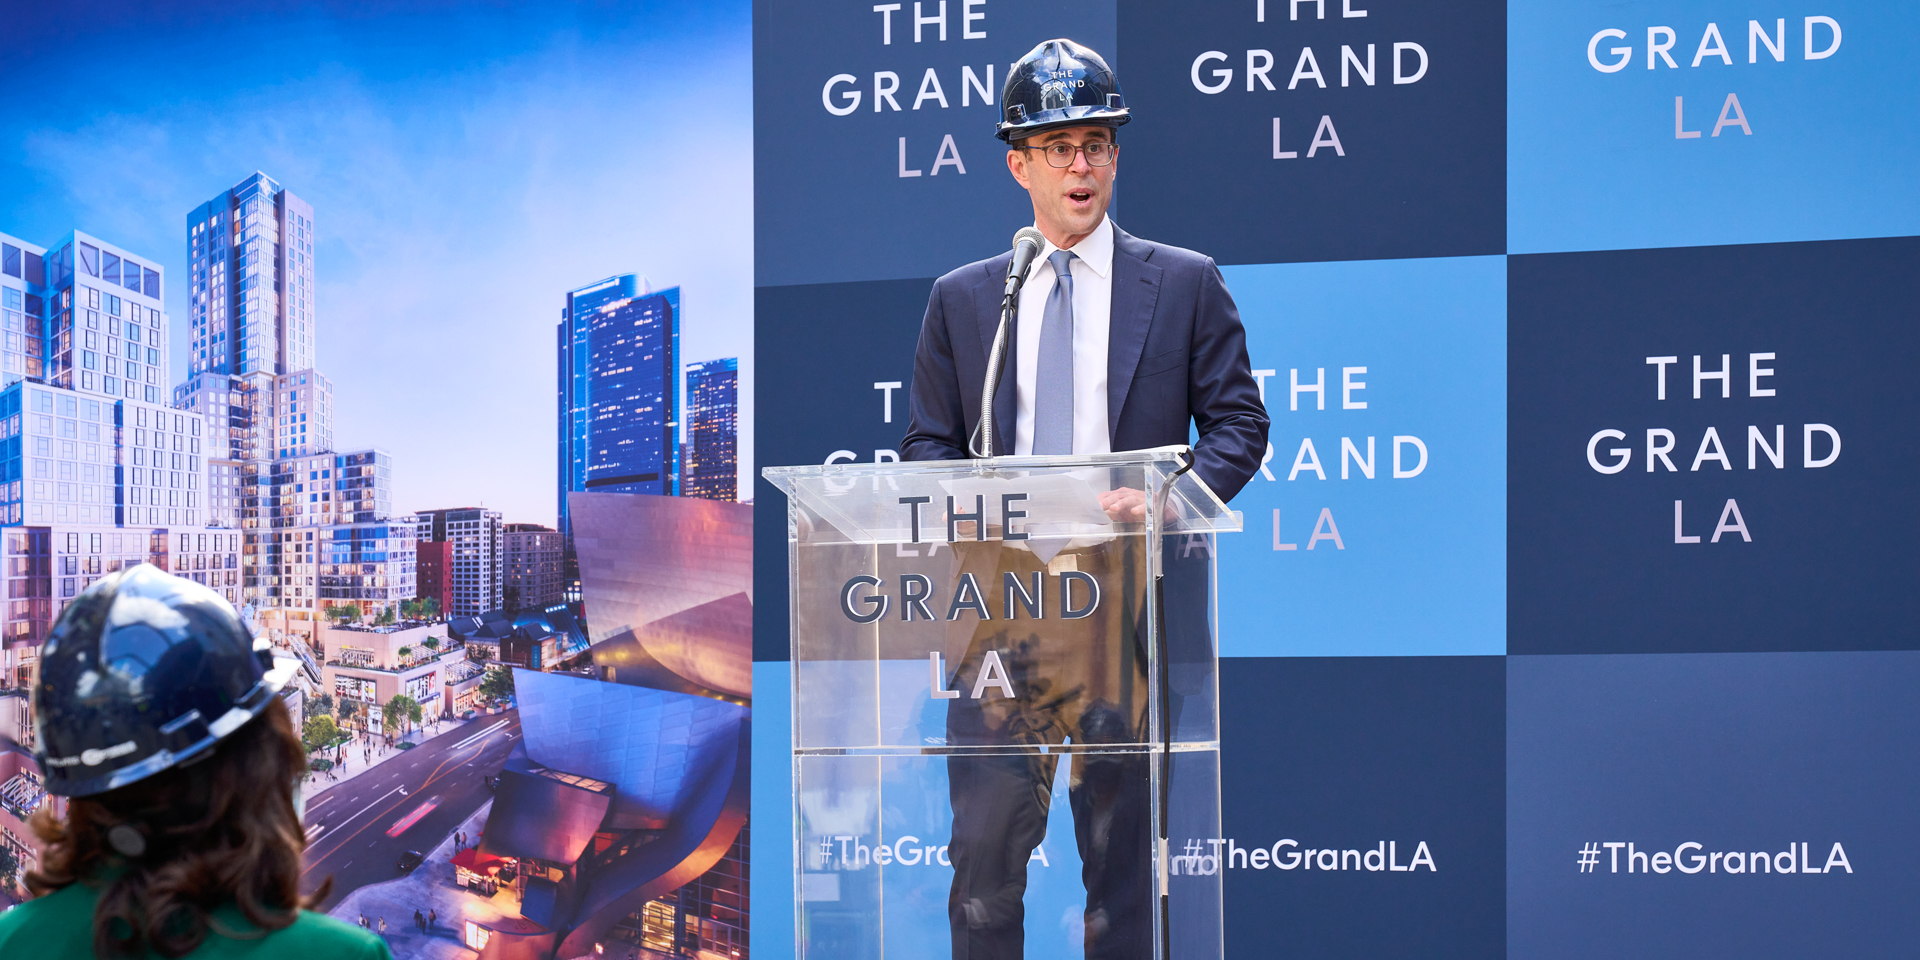 Celebrating The Grand topping out with Related CEO Jeff Blau